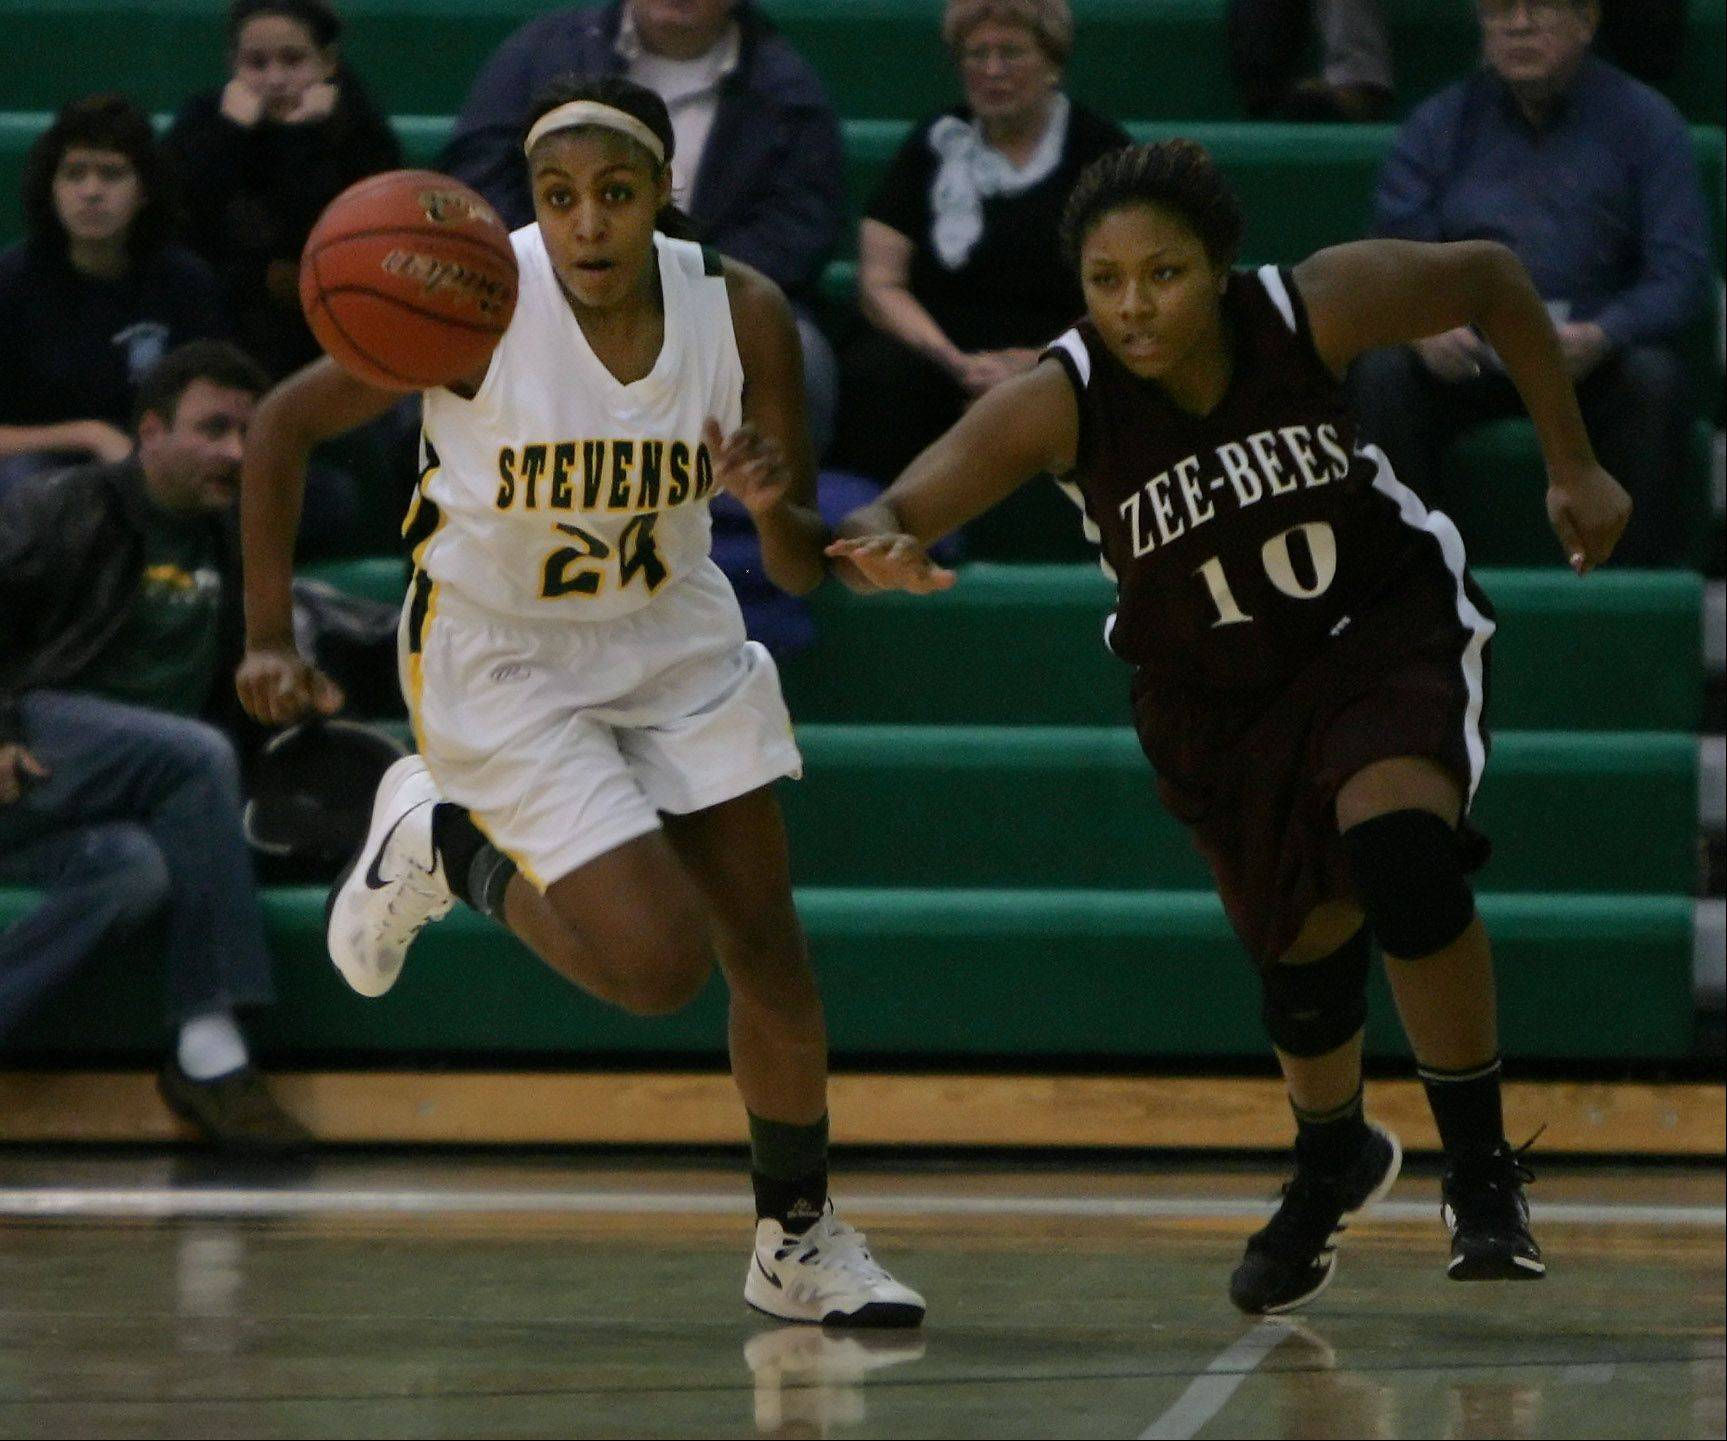 Stevenson forward Taylor Buford steals the ball away from Zion-Benton forward Keonnia Gentry in the first quarter.